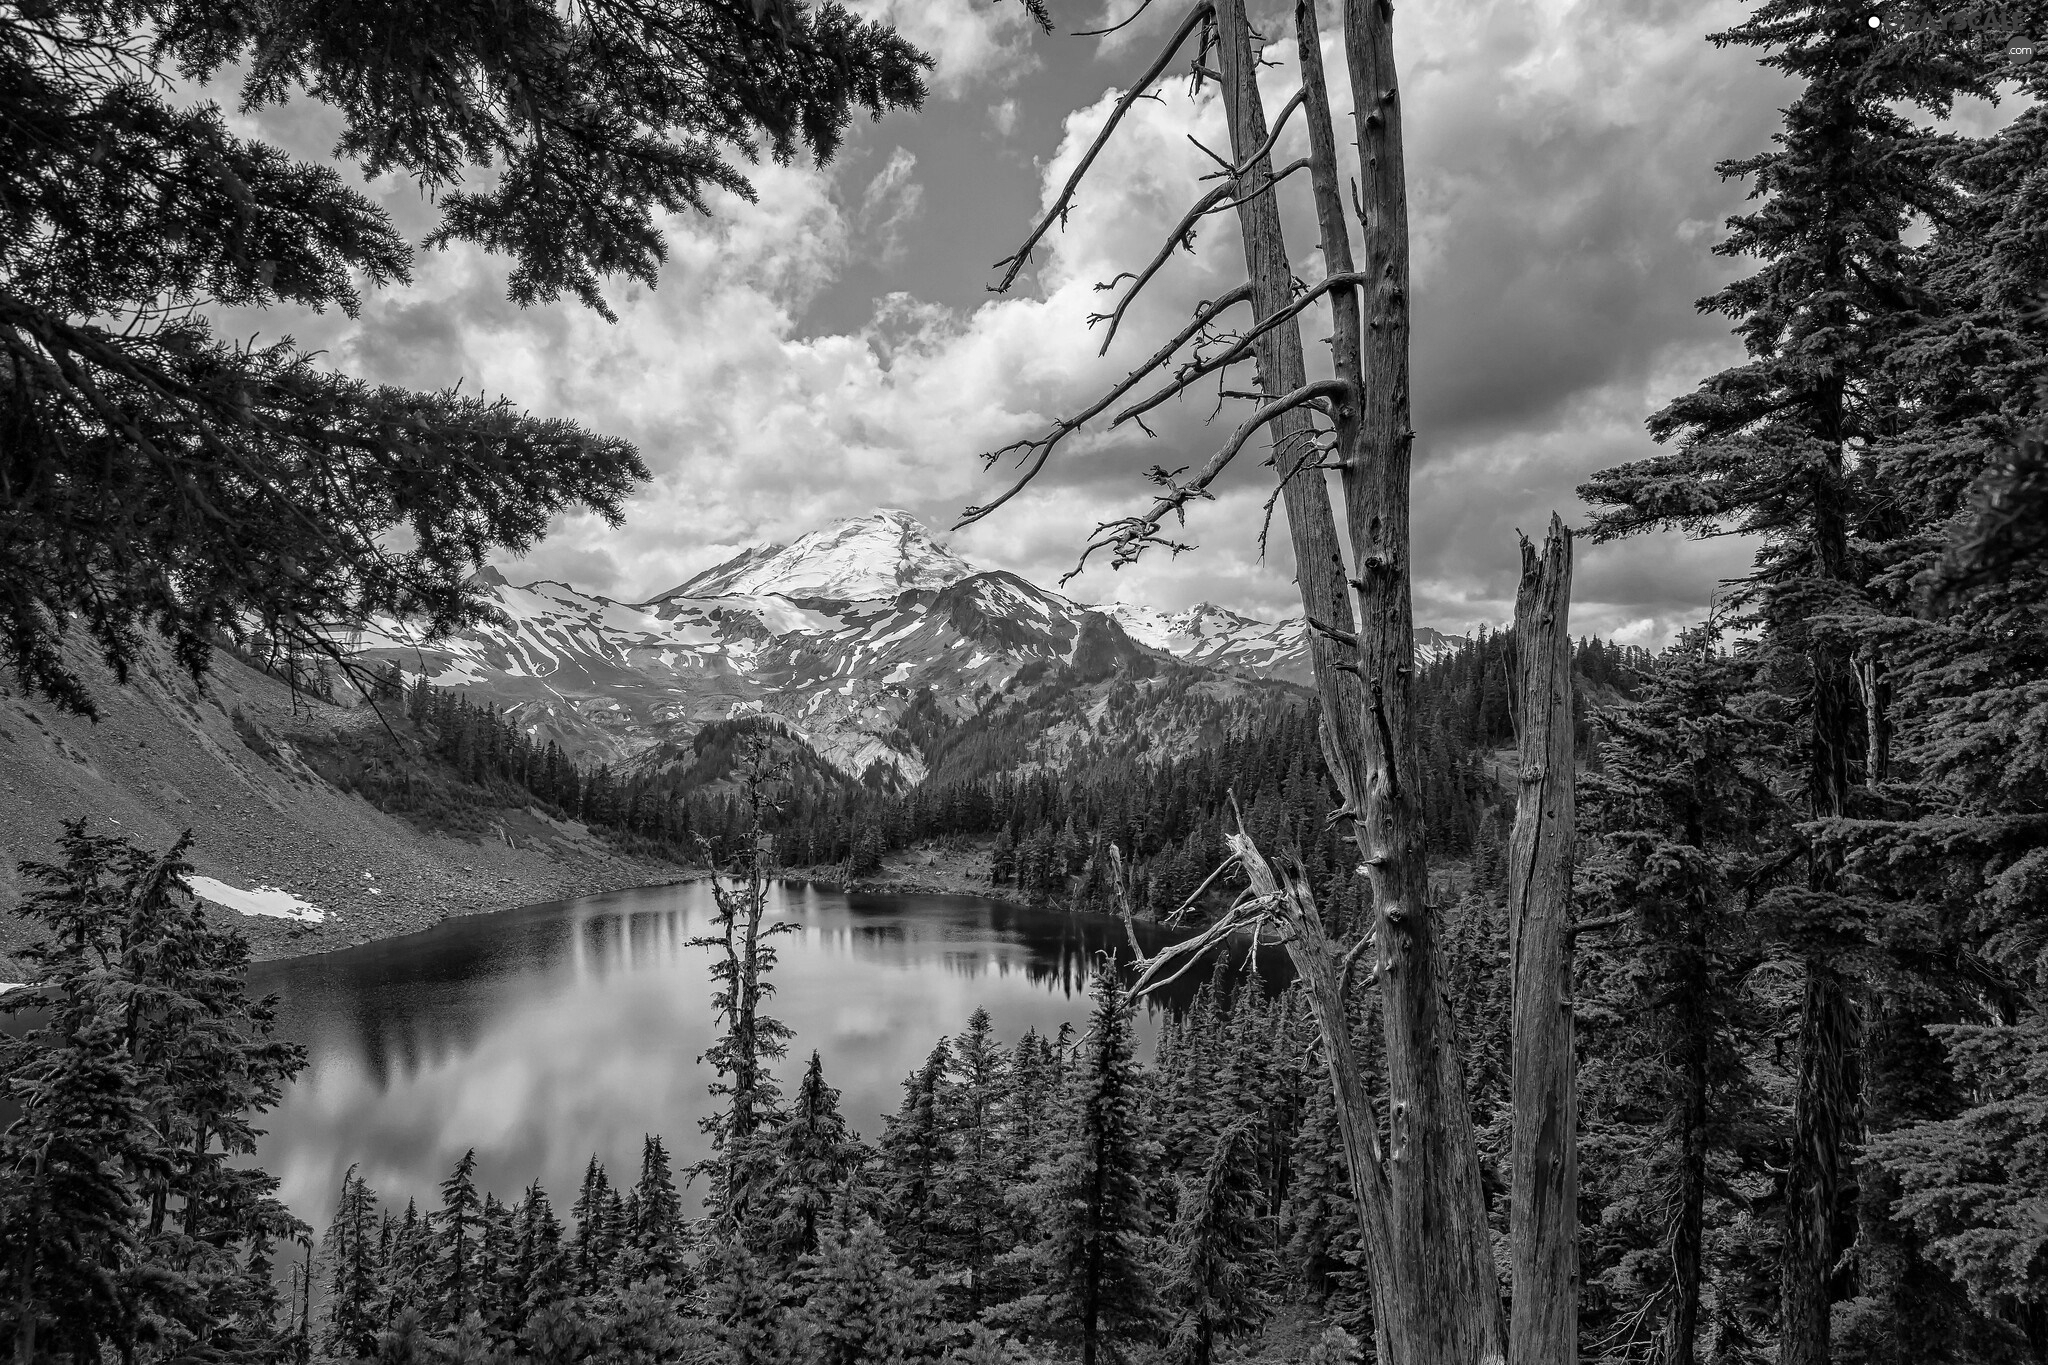 viewes, lake, woods, Mountains, Spruces, trees